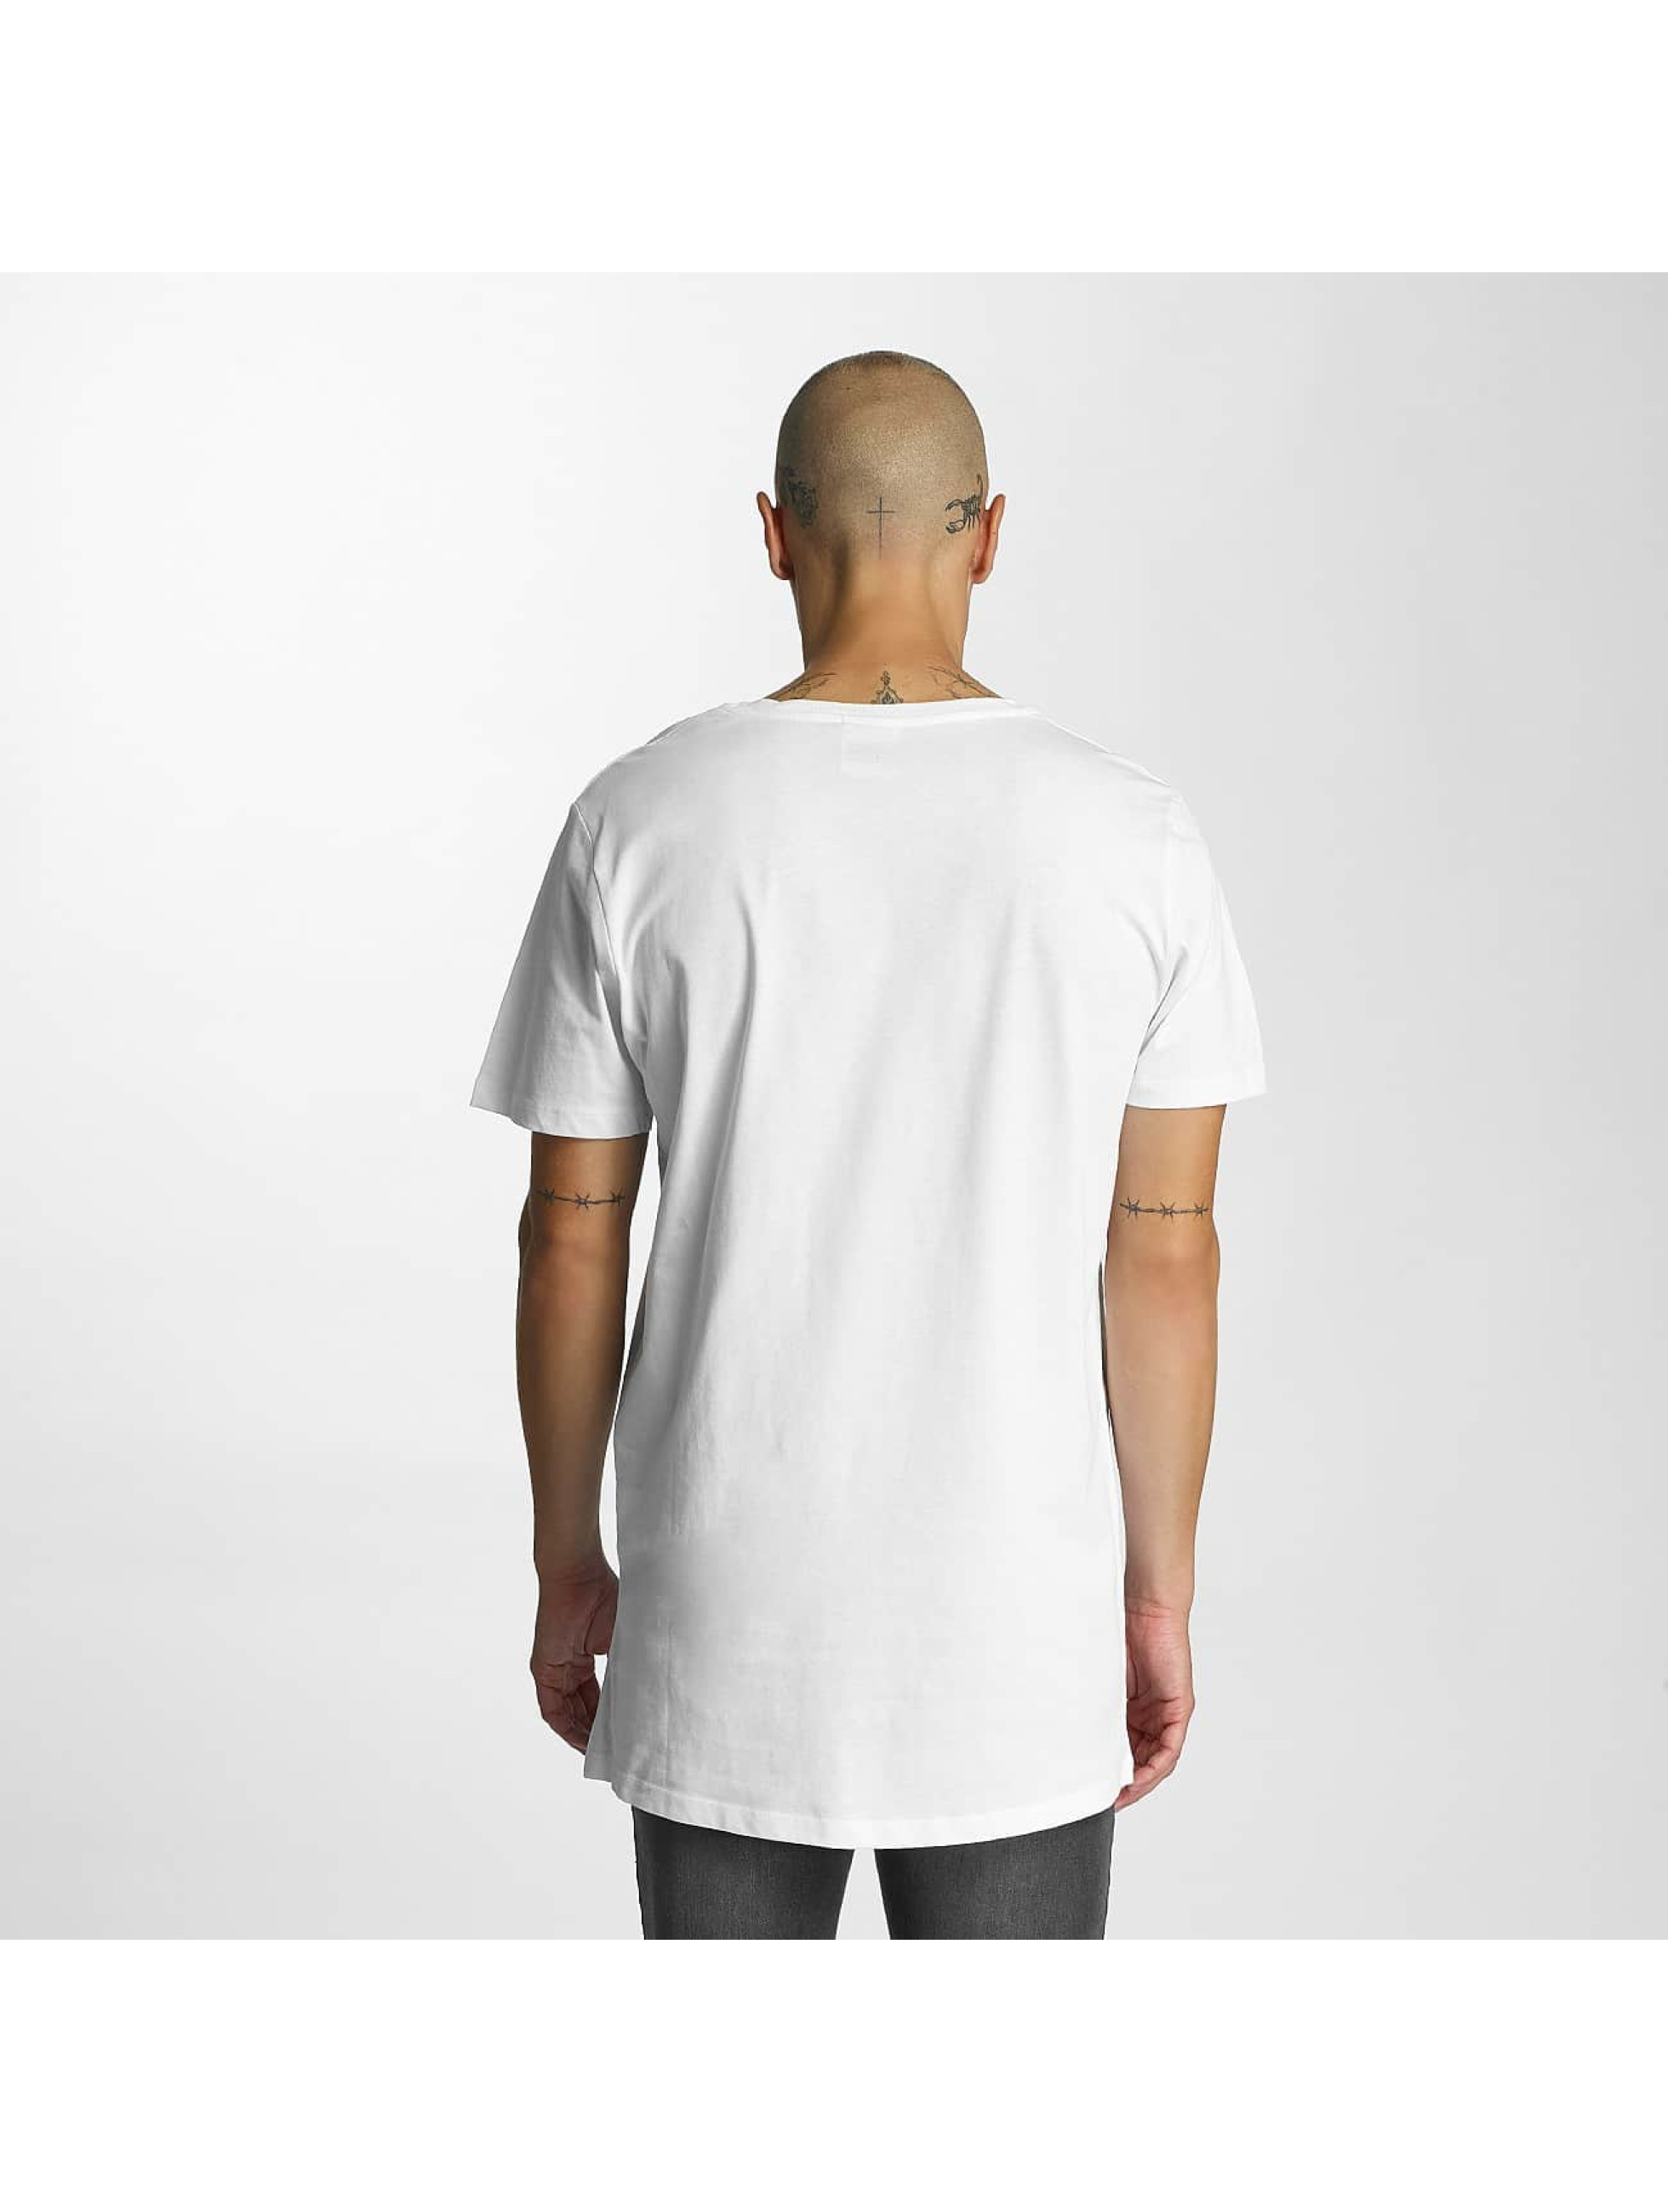 HYPE Camiseta Reef Dished blanco